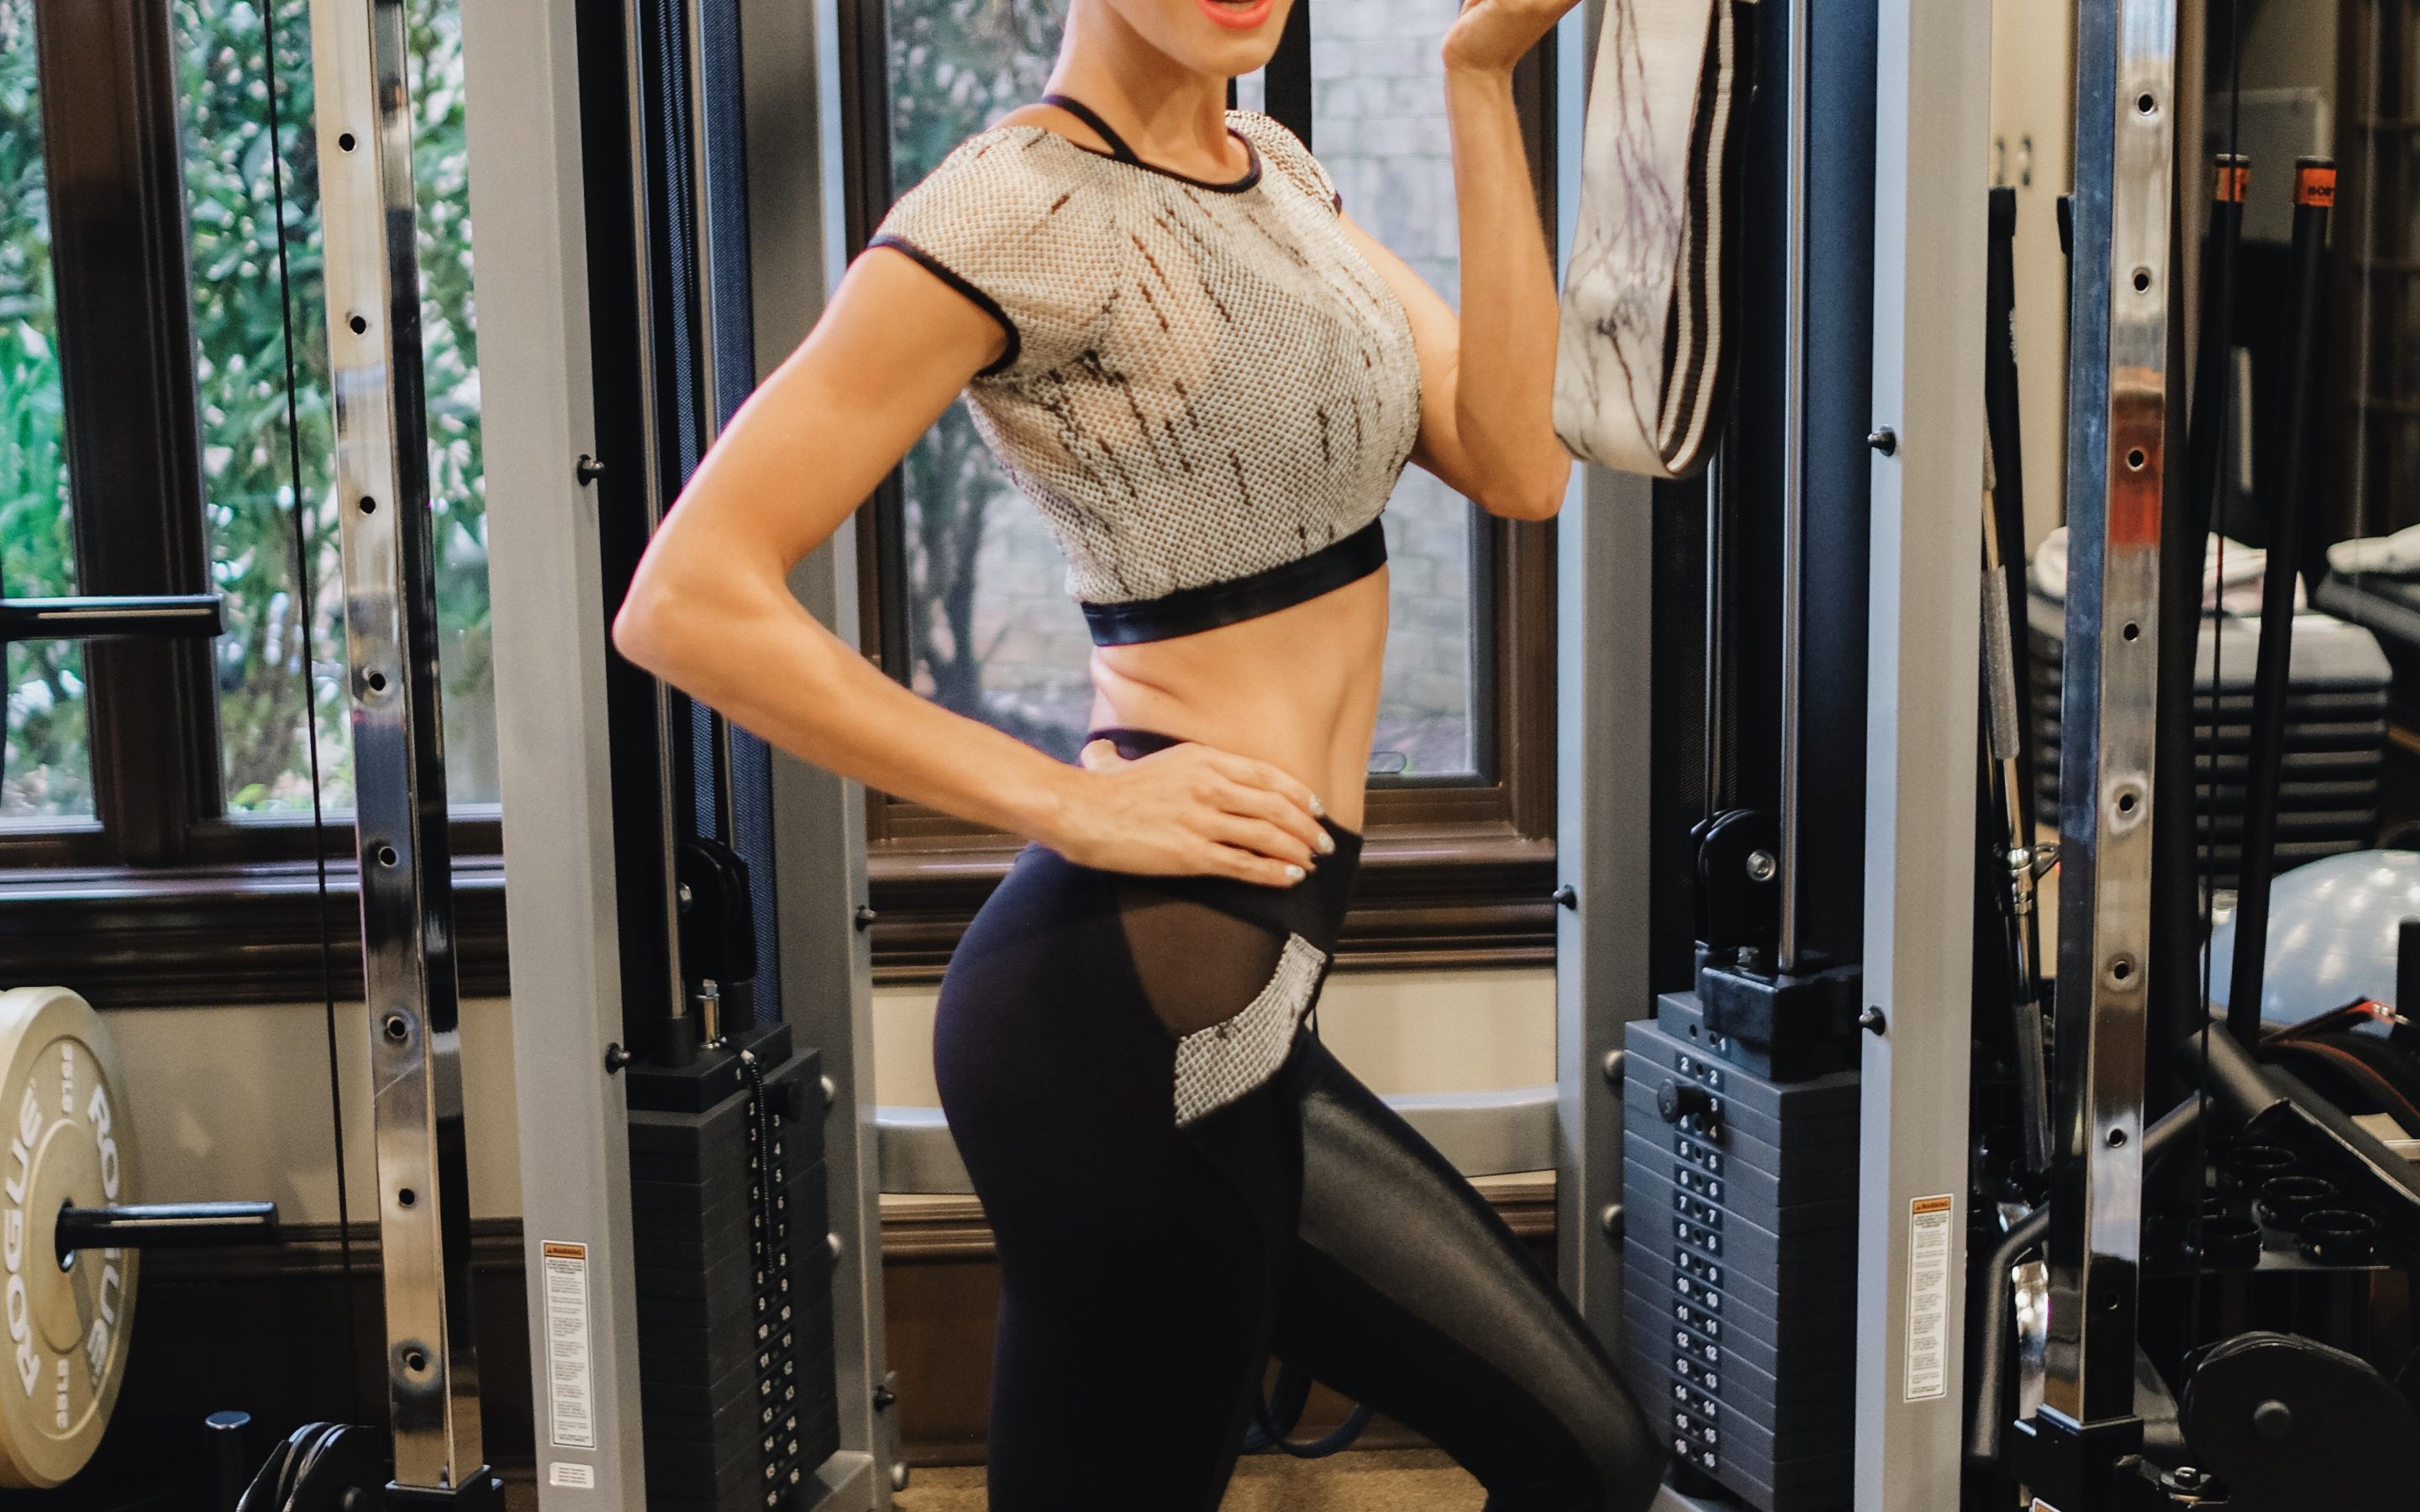 My Go-To Major Burn Banded Booty Workout Circuit